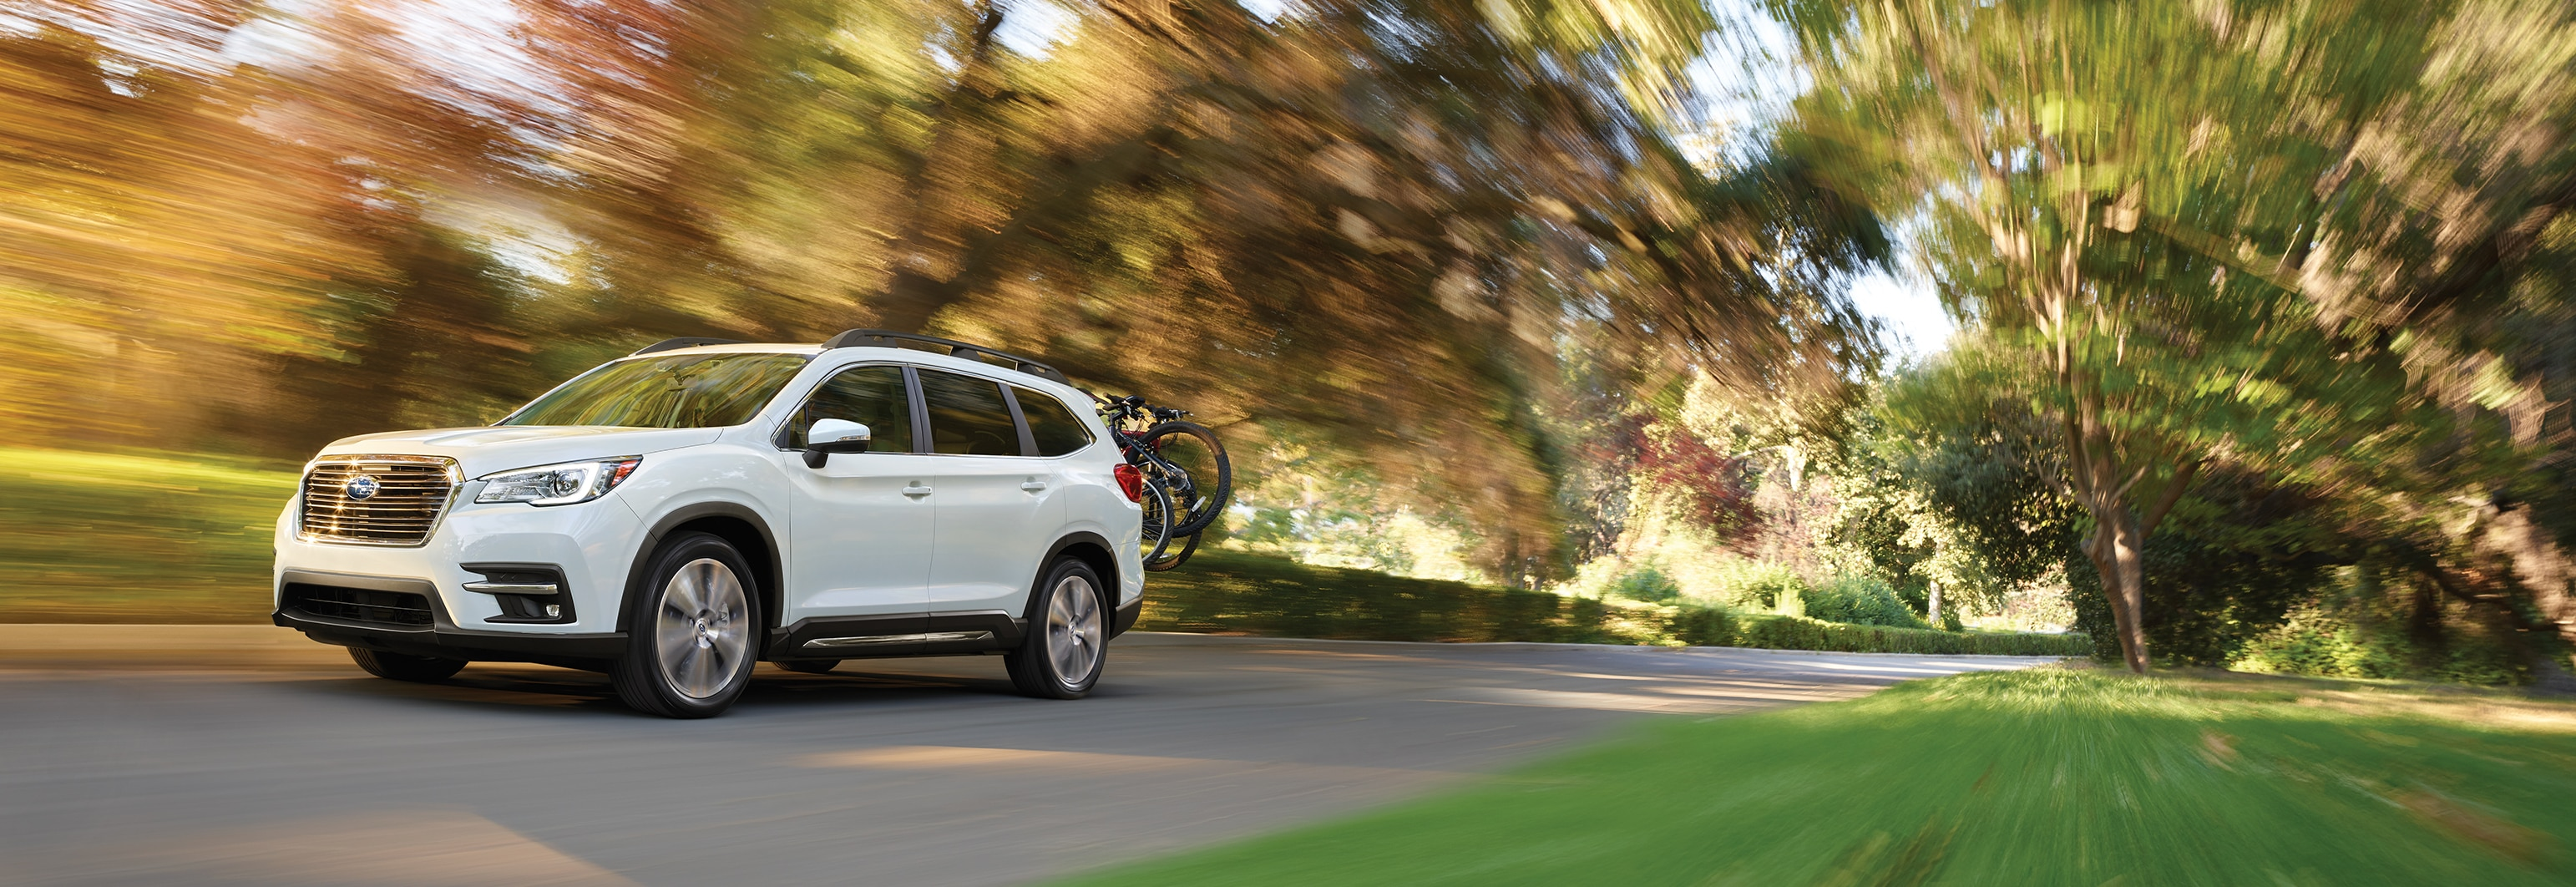 New Subaru Ascent In Acton At Village Subaru